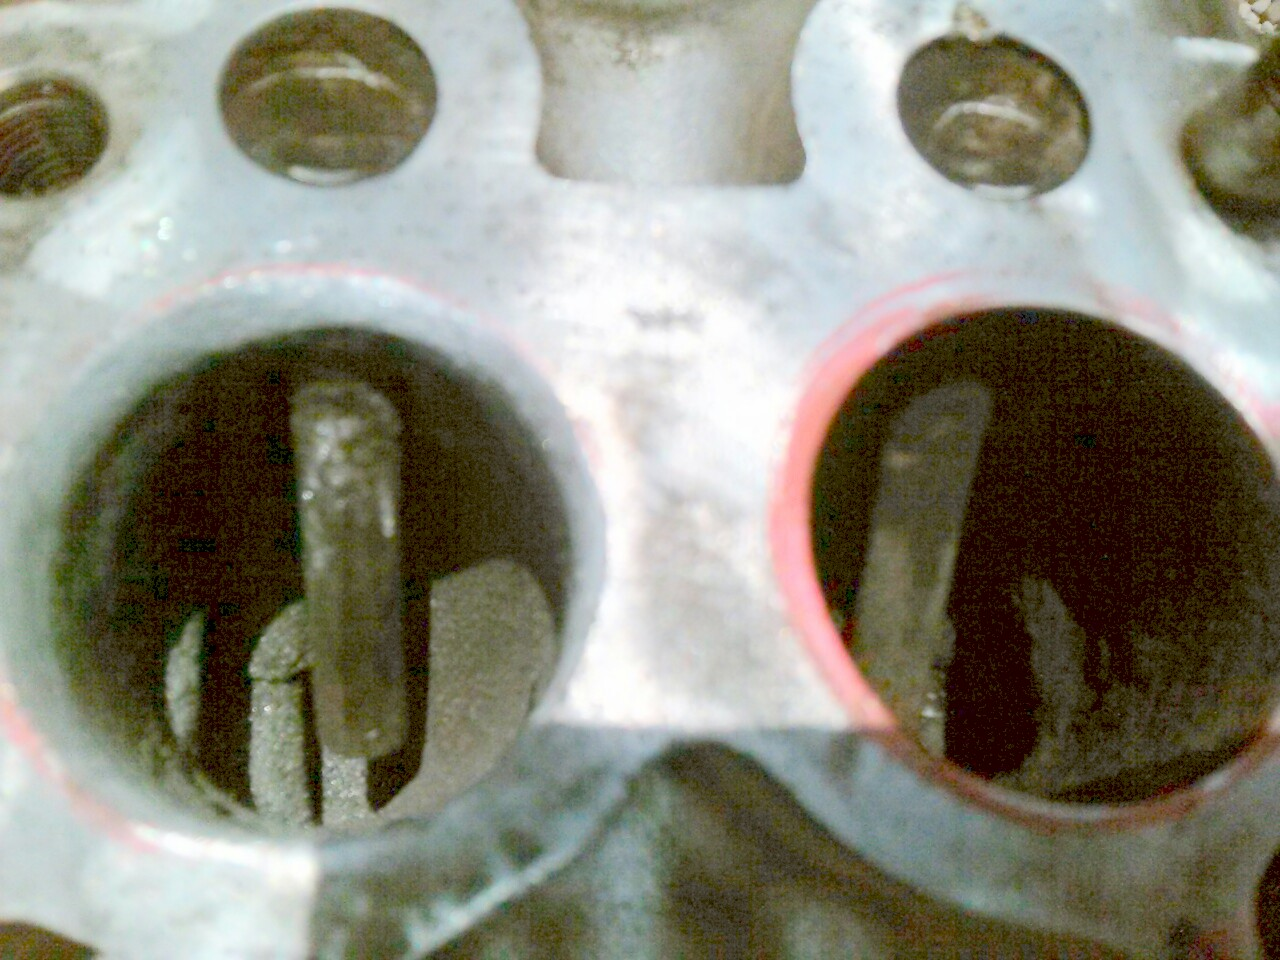 Opening up exhaust ports, removing aluminum pipes for better flow. - 19047441